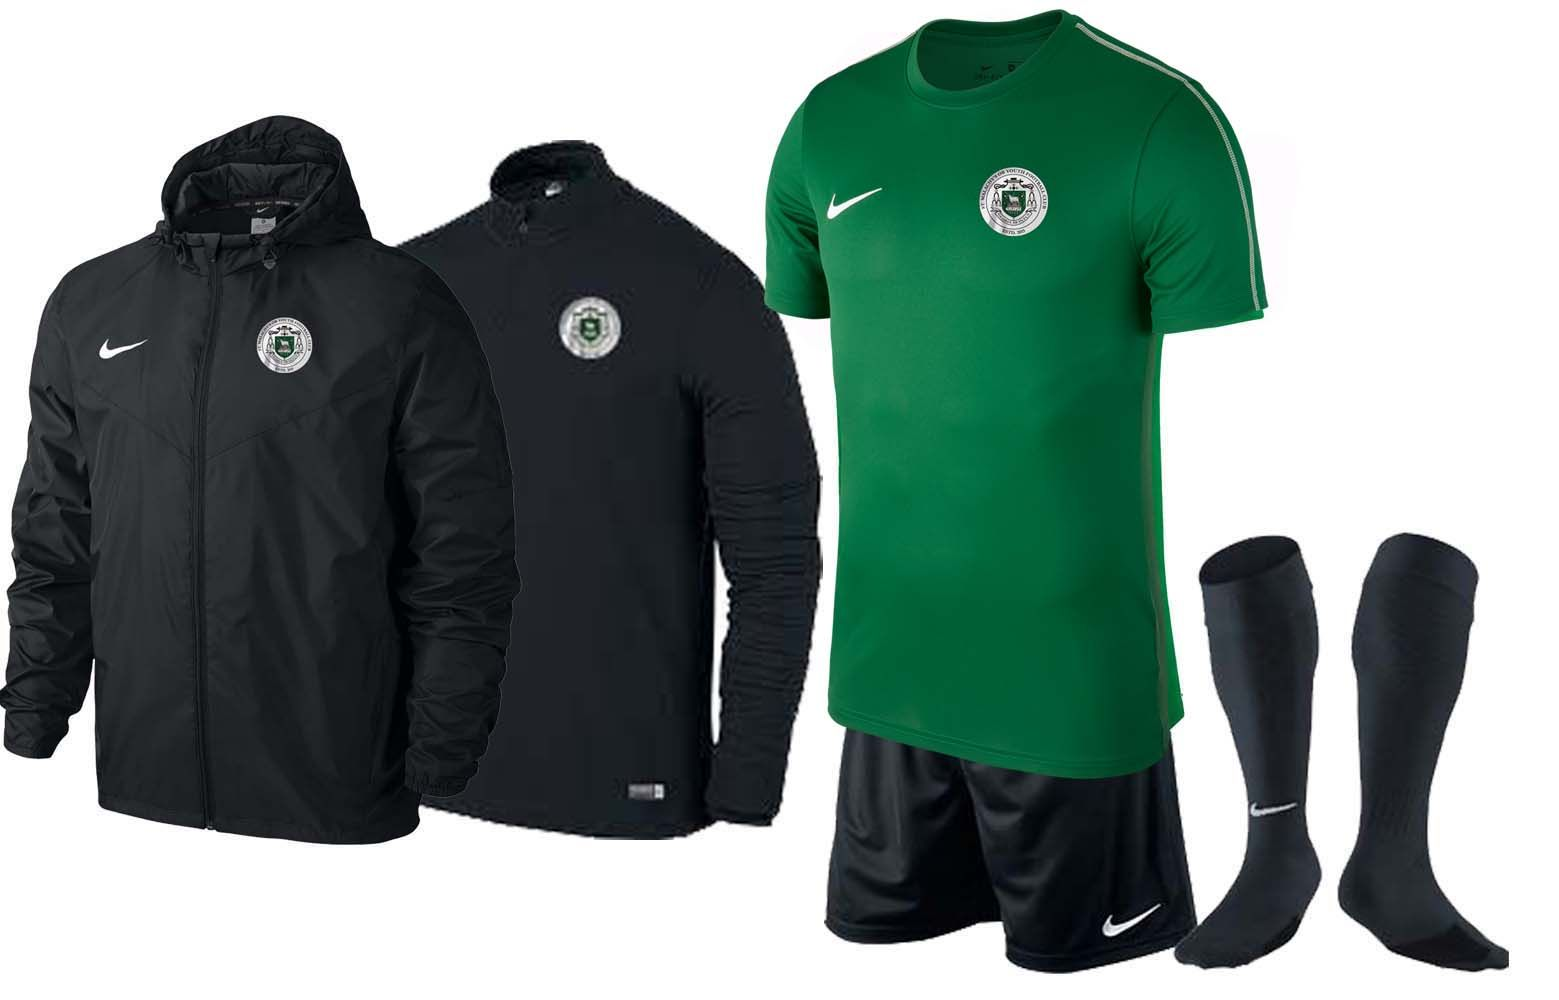 st malachy s ob player pack 1 26068 1 p